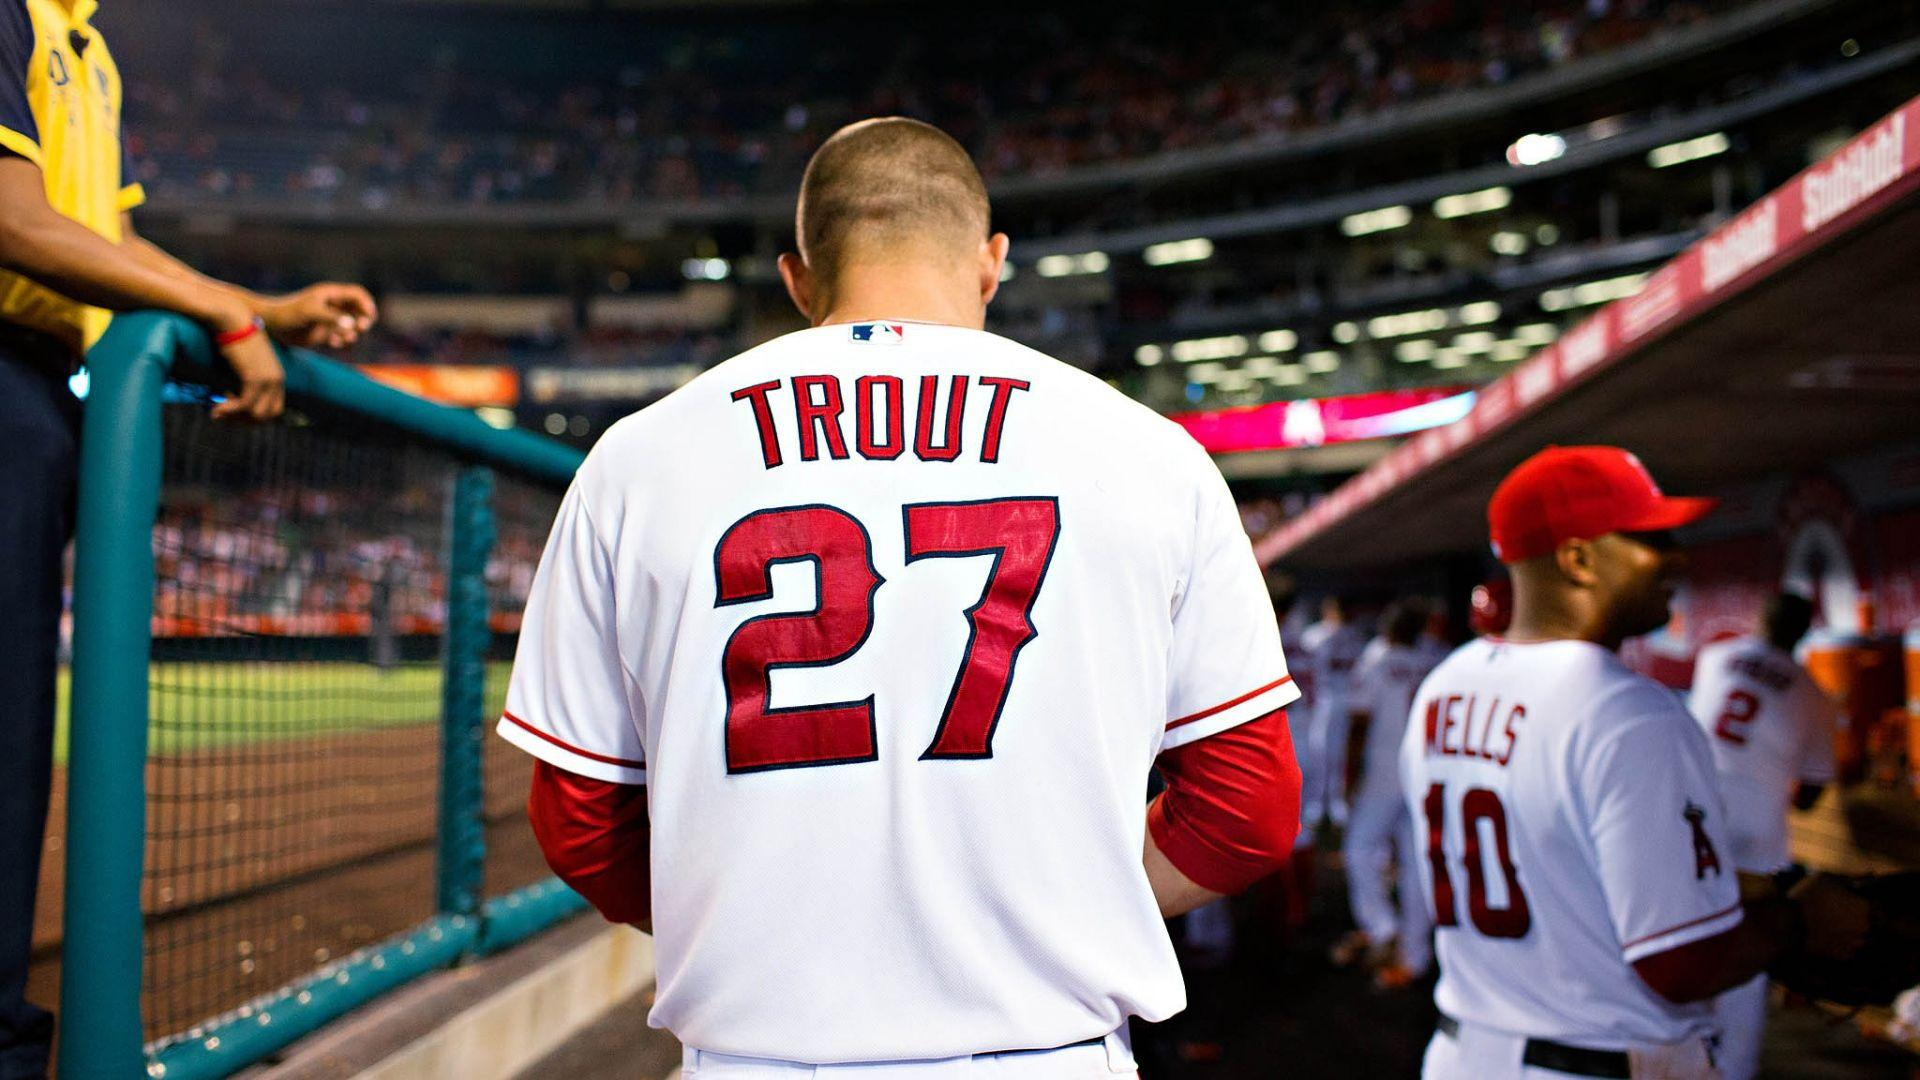 Download Wallpapers 1920x1080 Mike trout, Baseball, Los angeles